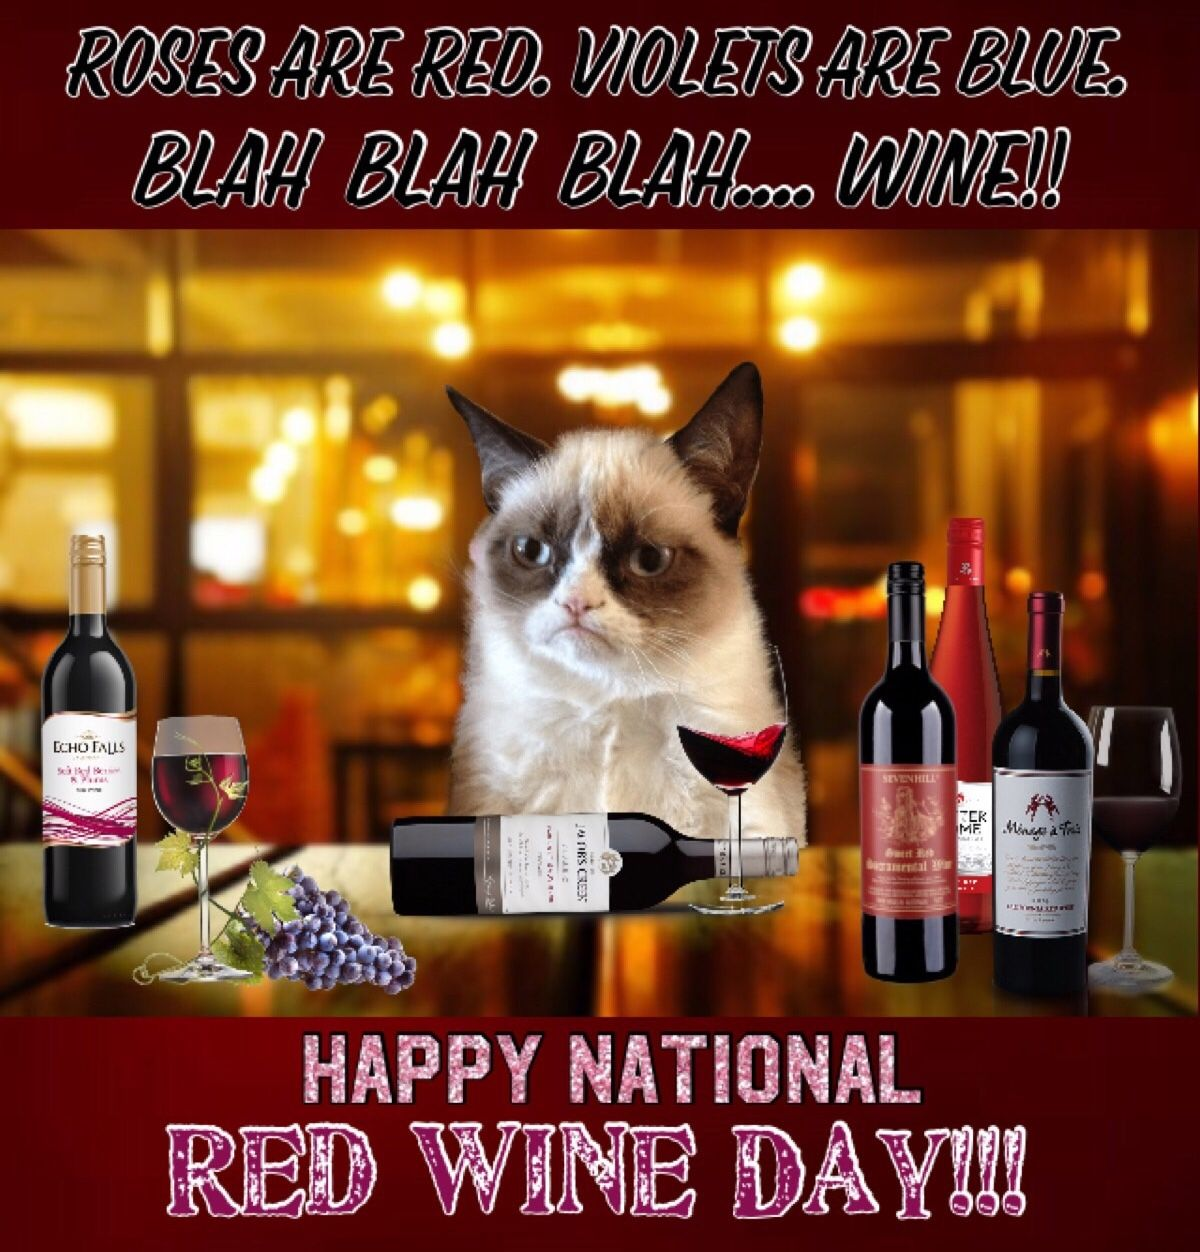 Grumpy Cat Says Happy National Red Wine Day!! 🍷🍷🍷 (With